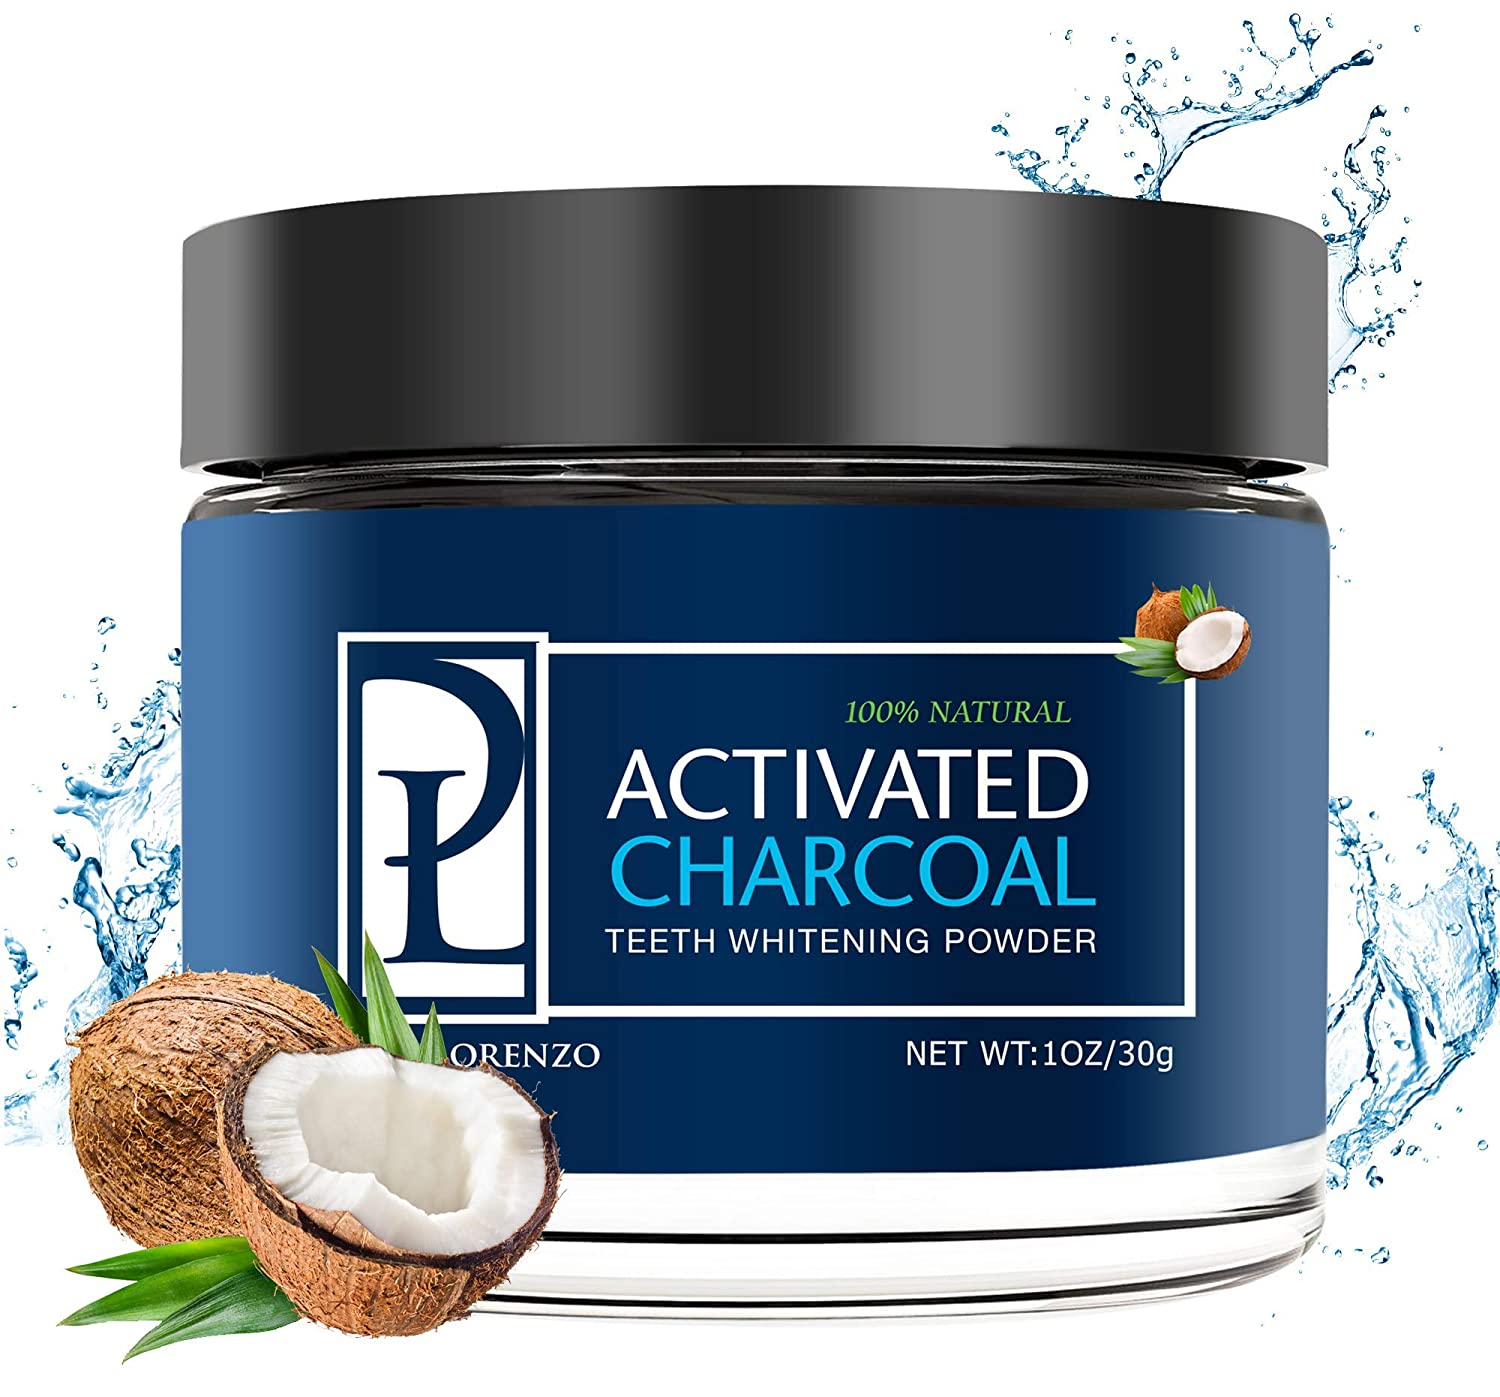 Natural Teeth Whitening Powder - Made with Activated Coconut Charcoal - for Sensitive Teeth and Healthy Whitener TuKnon